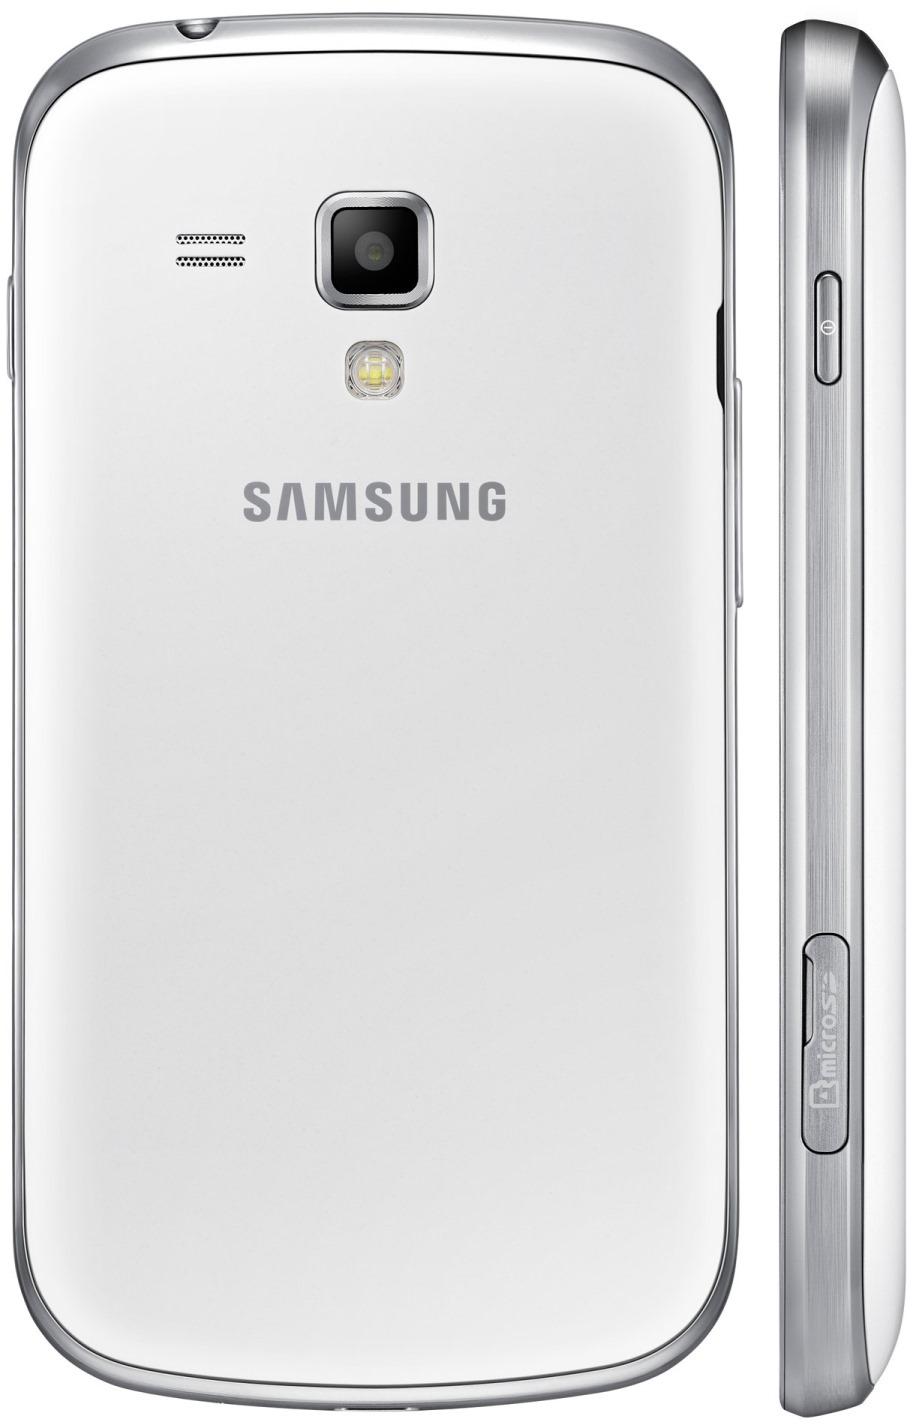 Samsung Galaxy S Duos 2 vs Galaxy Core